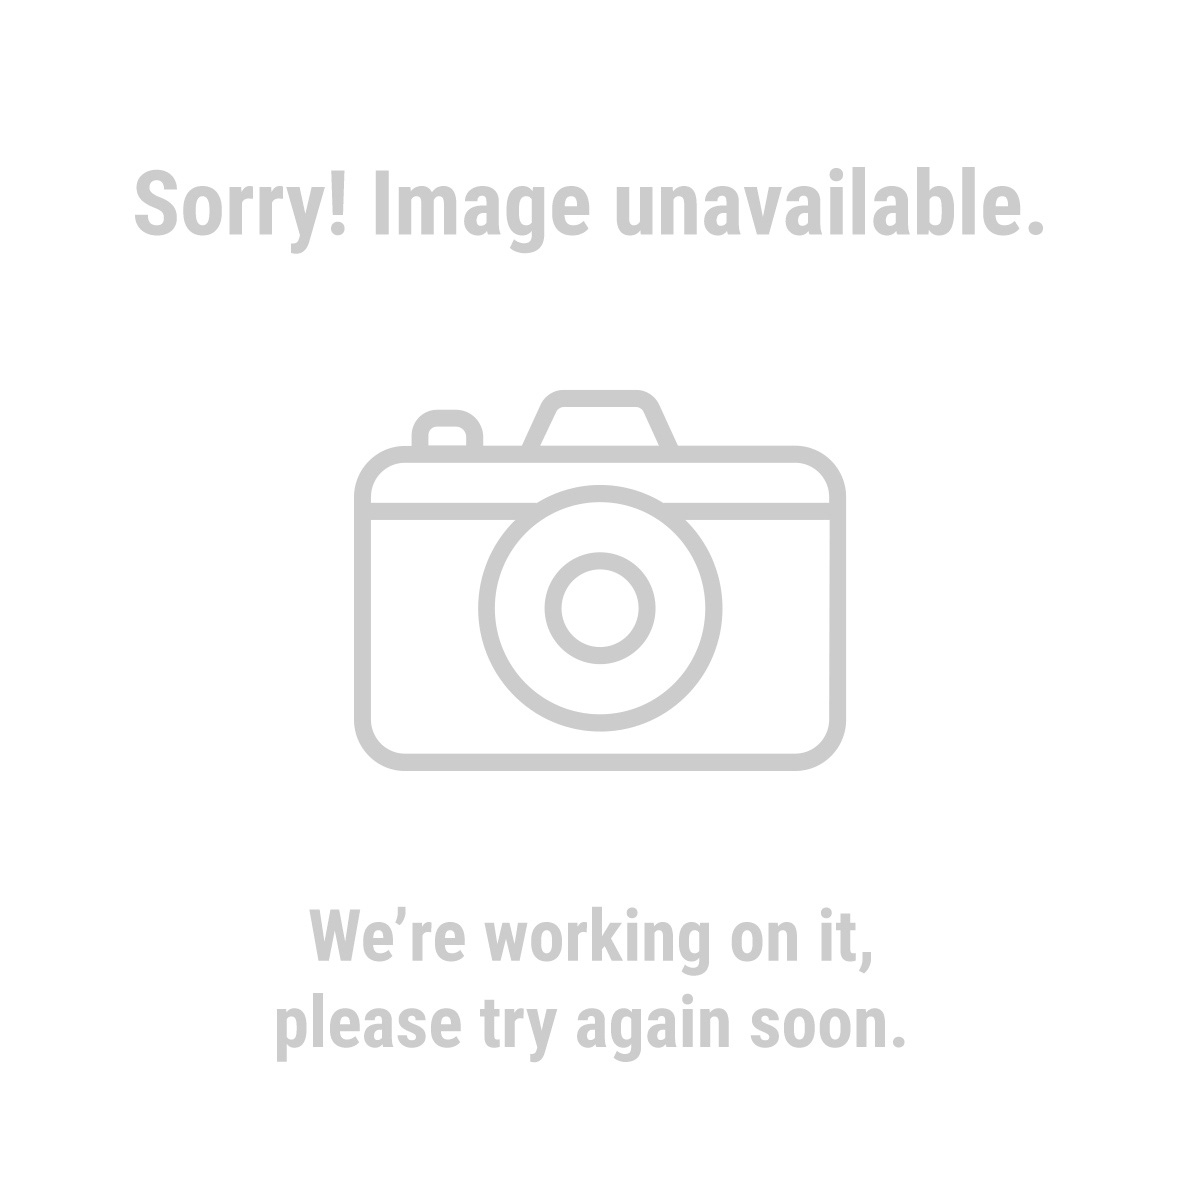 Badland® 61383 3500 lb. ATV/Utility Electric Winch with Automatic Load-Holding Brake